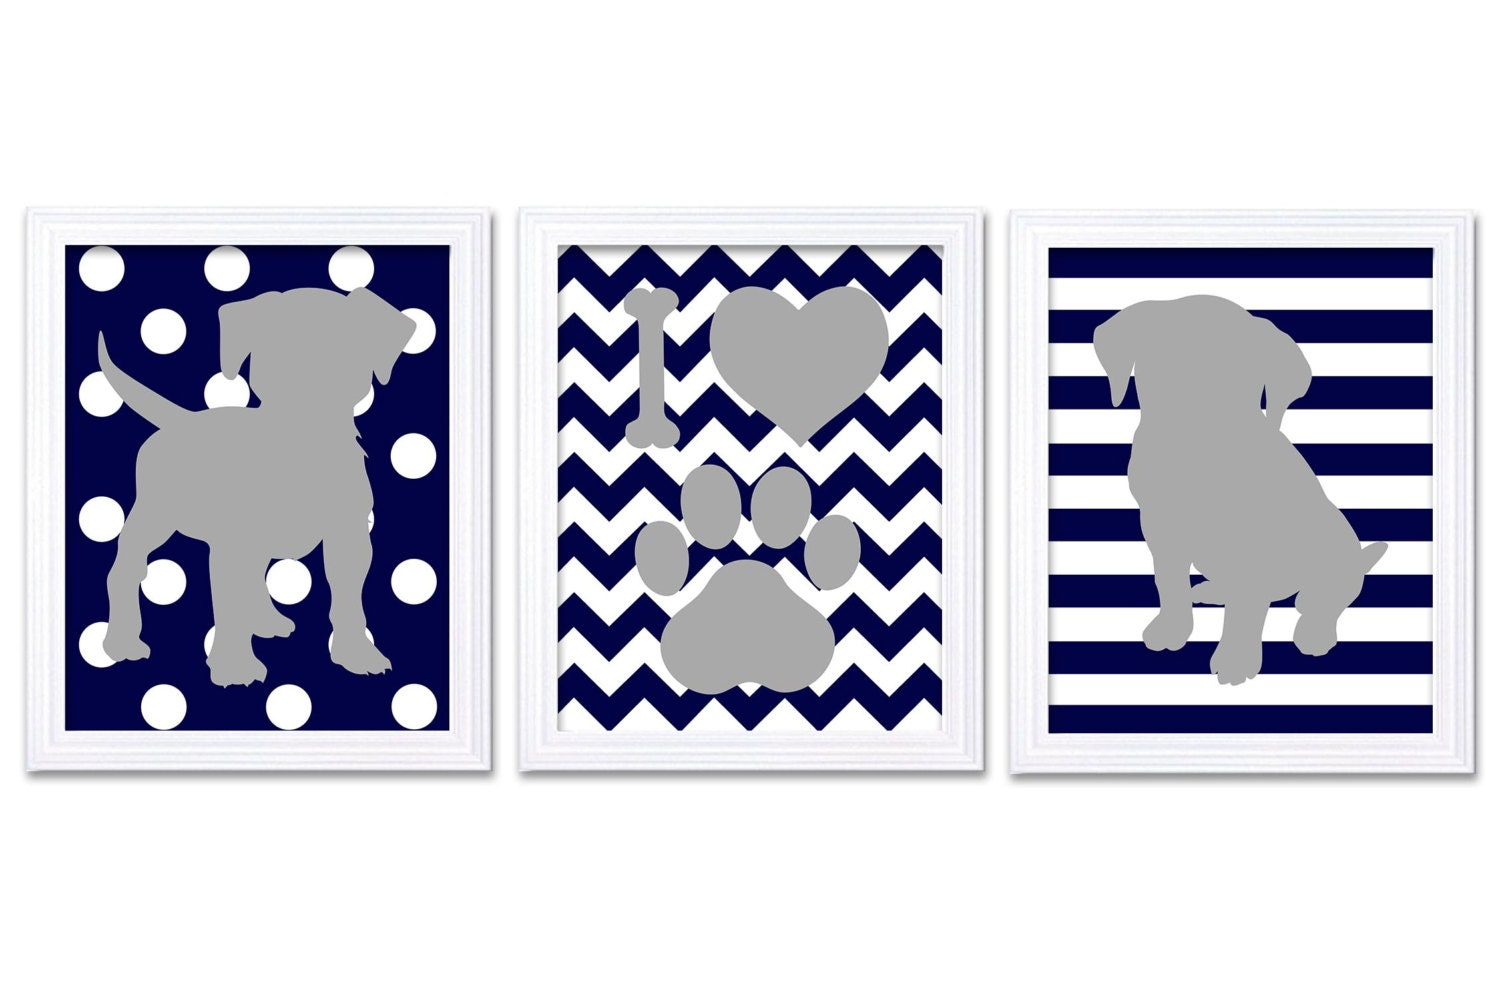 Puppy Dog Nursery Art Puppy Prints Set of 3 Prints Navy Blue Grey Stripes Polka Dots Chevron Baby Wa